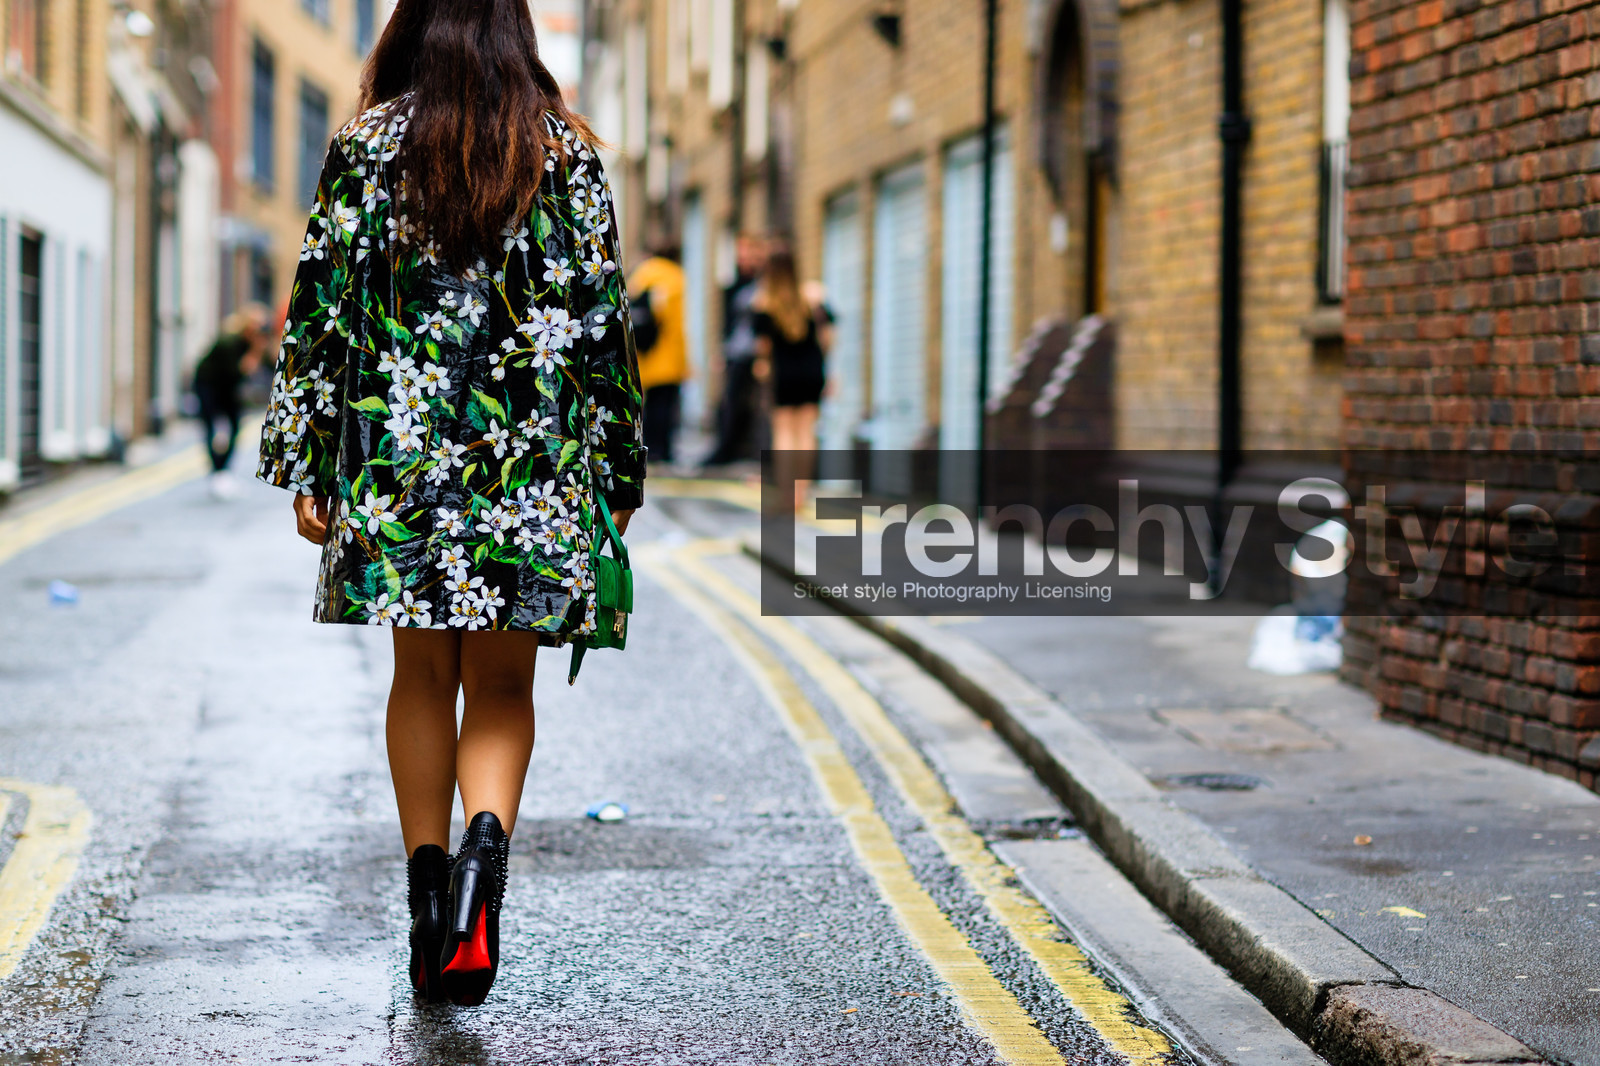 ee7c90fbf46 1609L0021.jpg | Frenchy Style | Street Style by Jonathan Paciullo